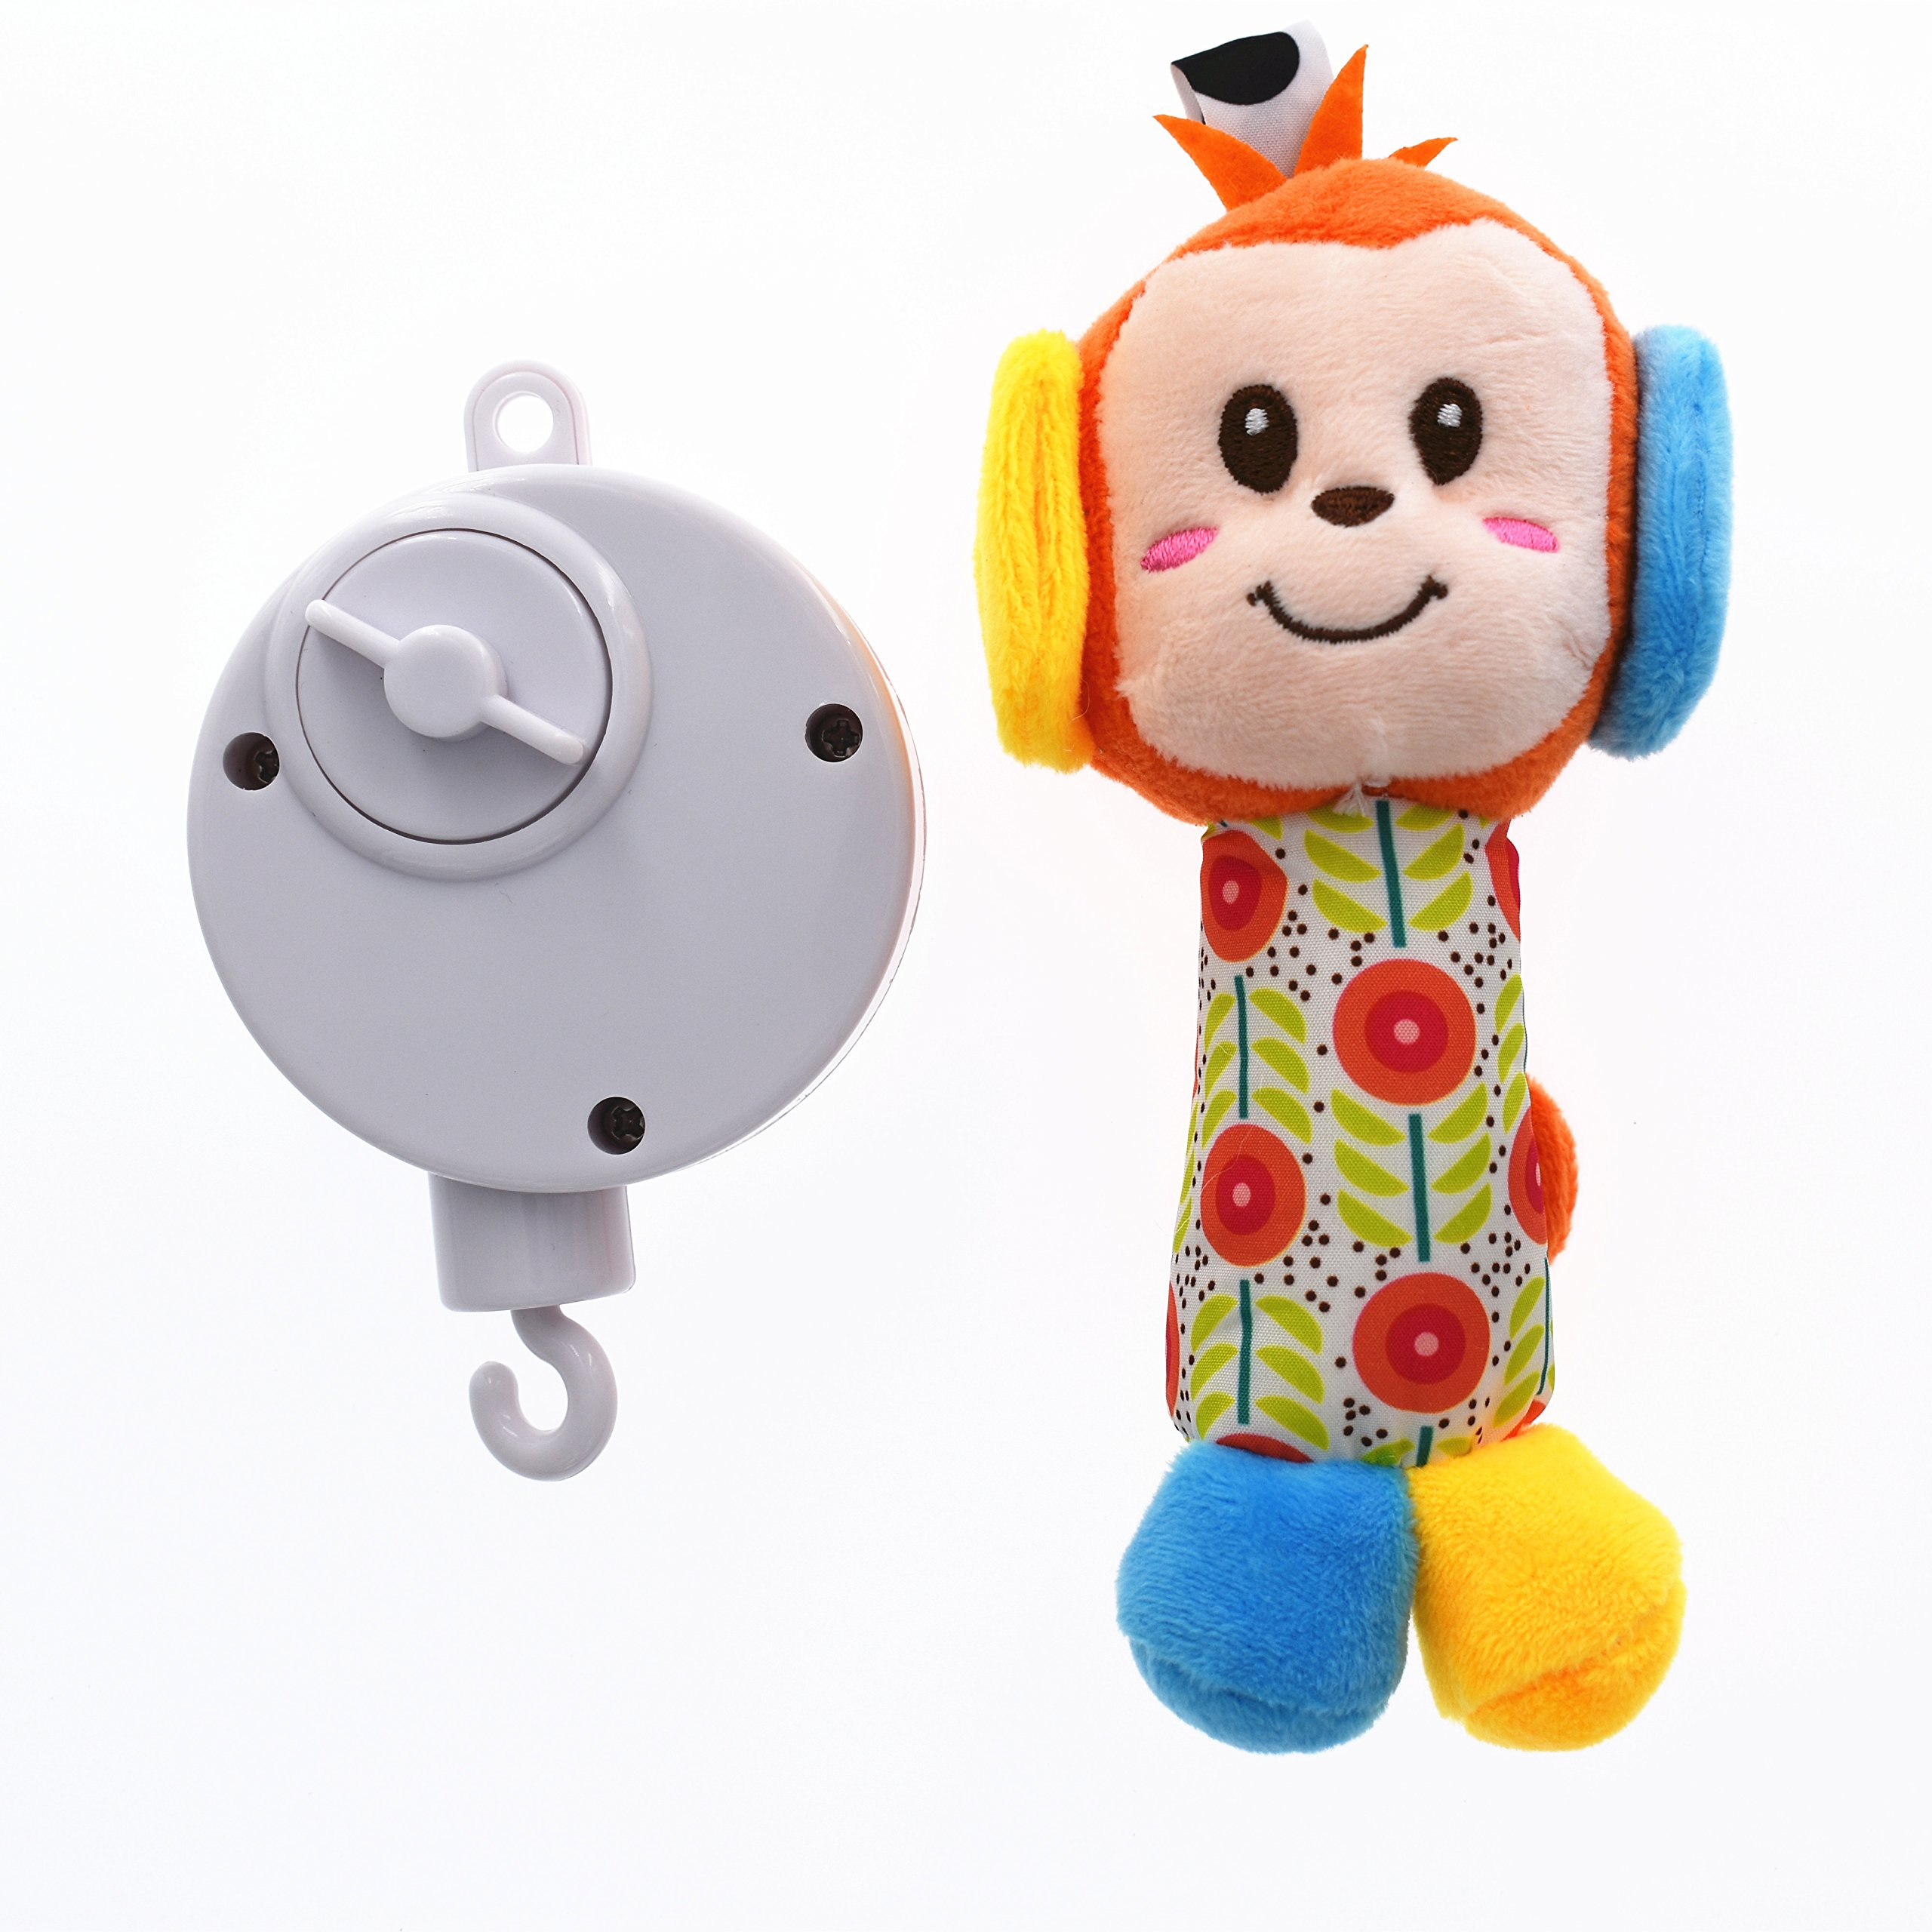 Musical Wind Up Bed Bell Crib Mobile with Soft Toys Tune Brahms lullaby